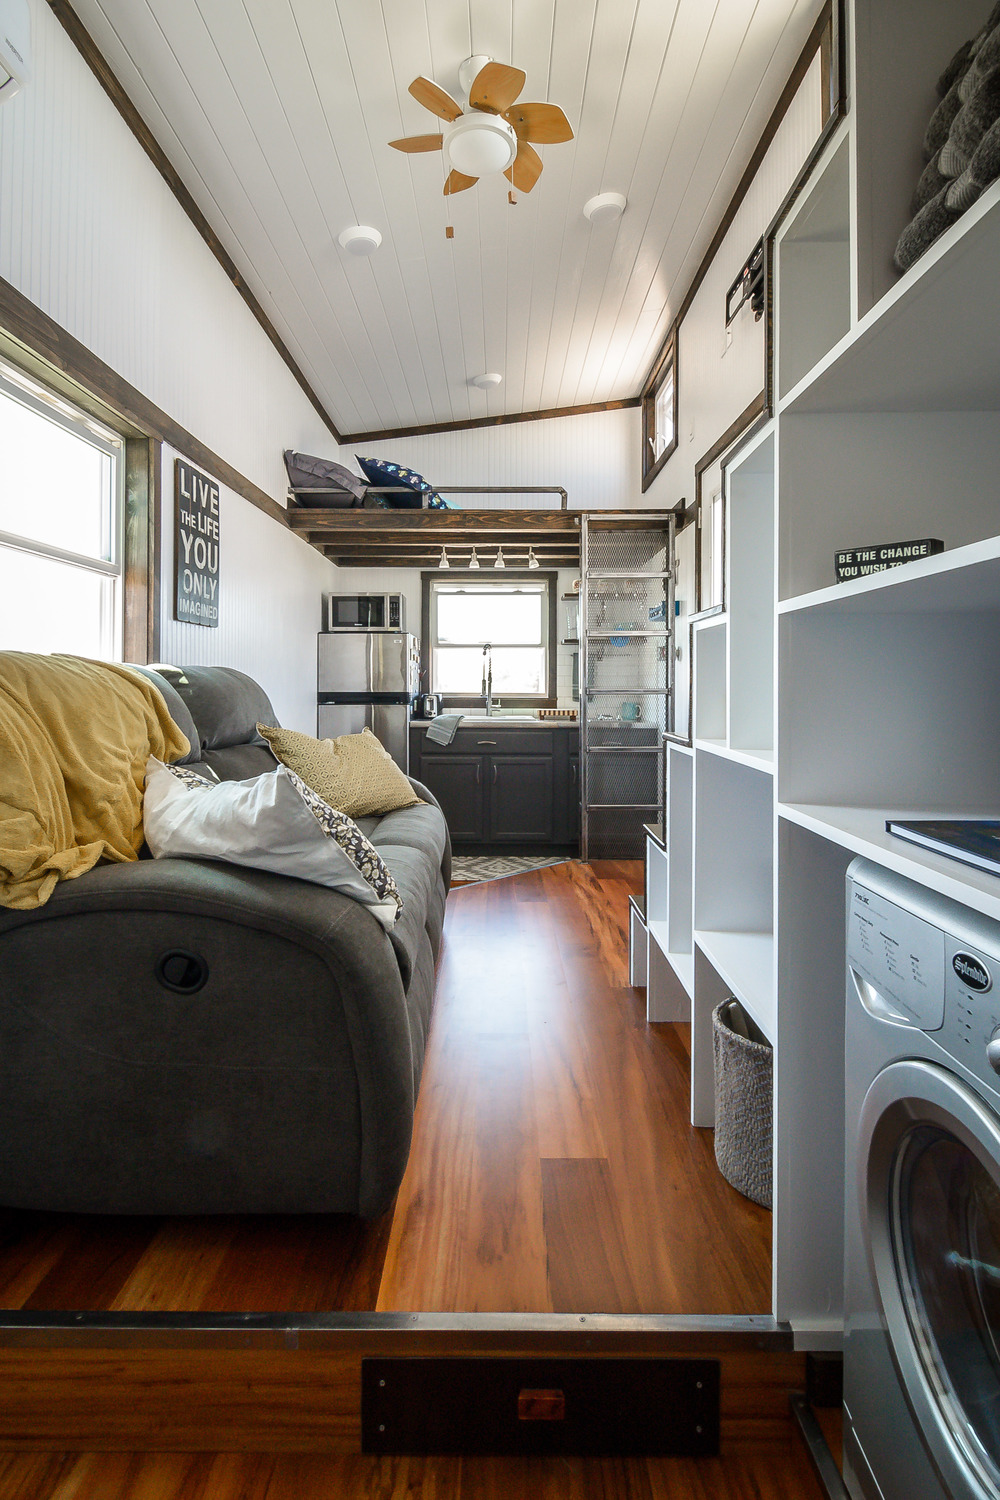 The Triton Wind River Tiny Homes